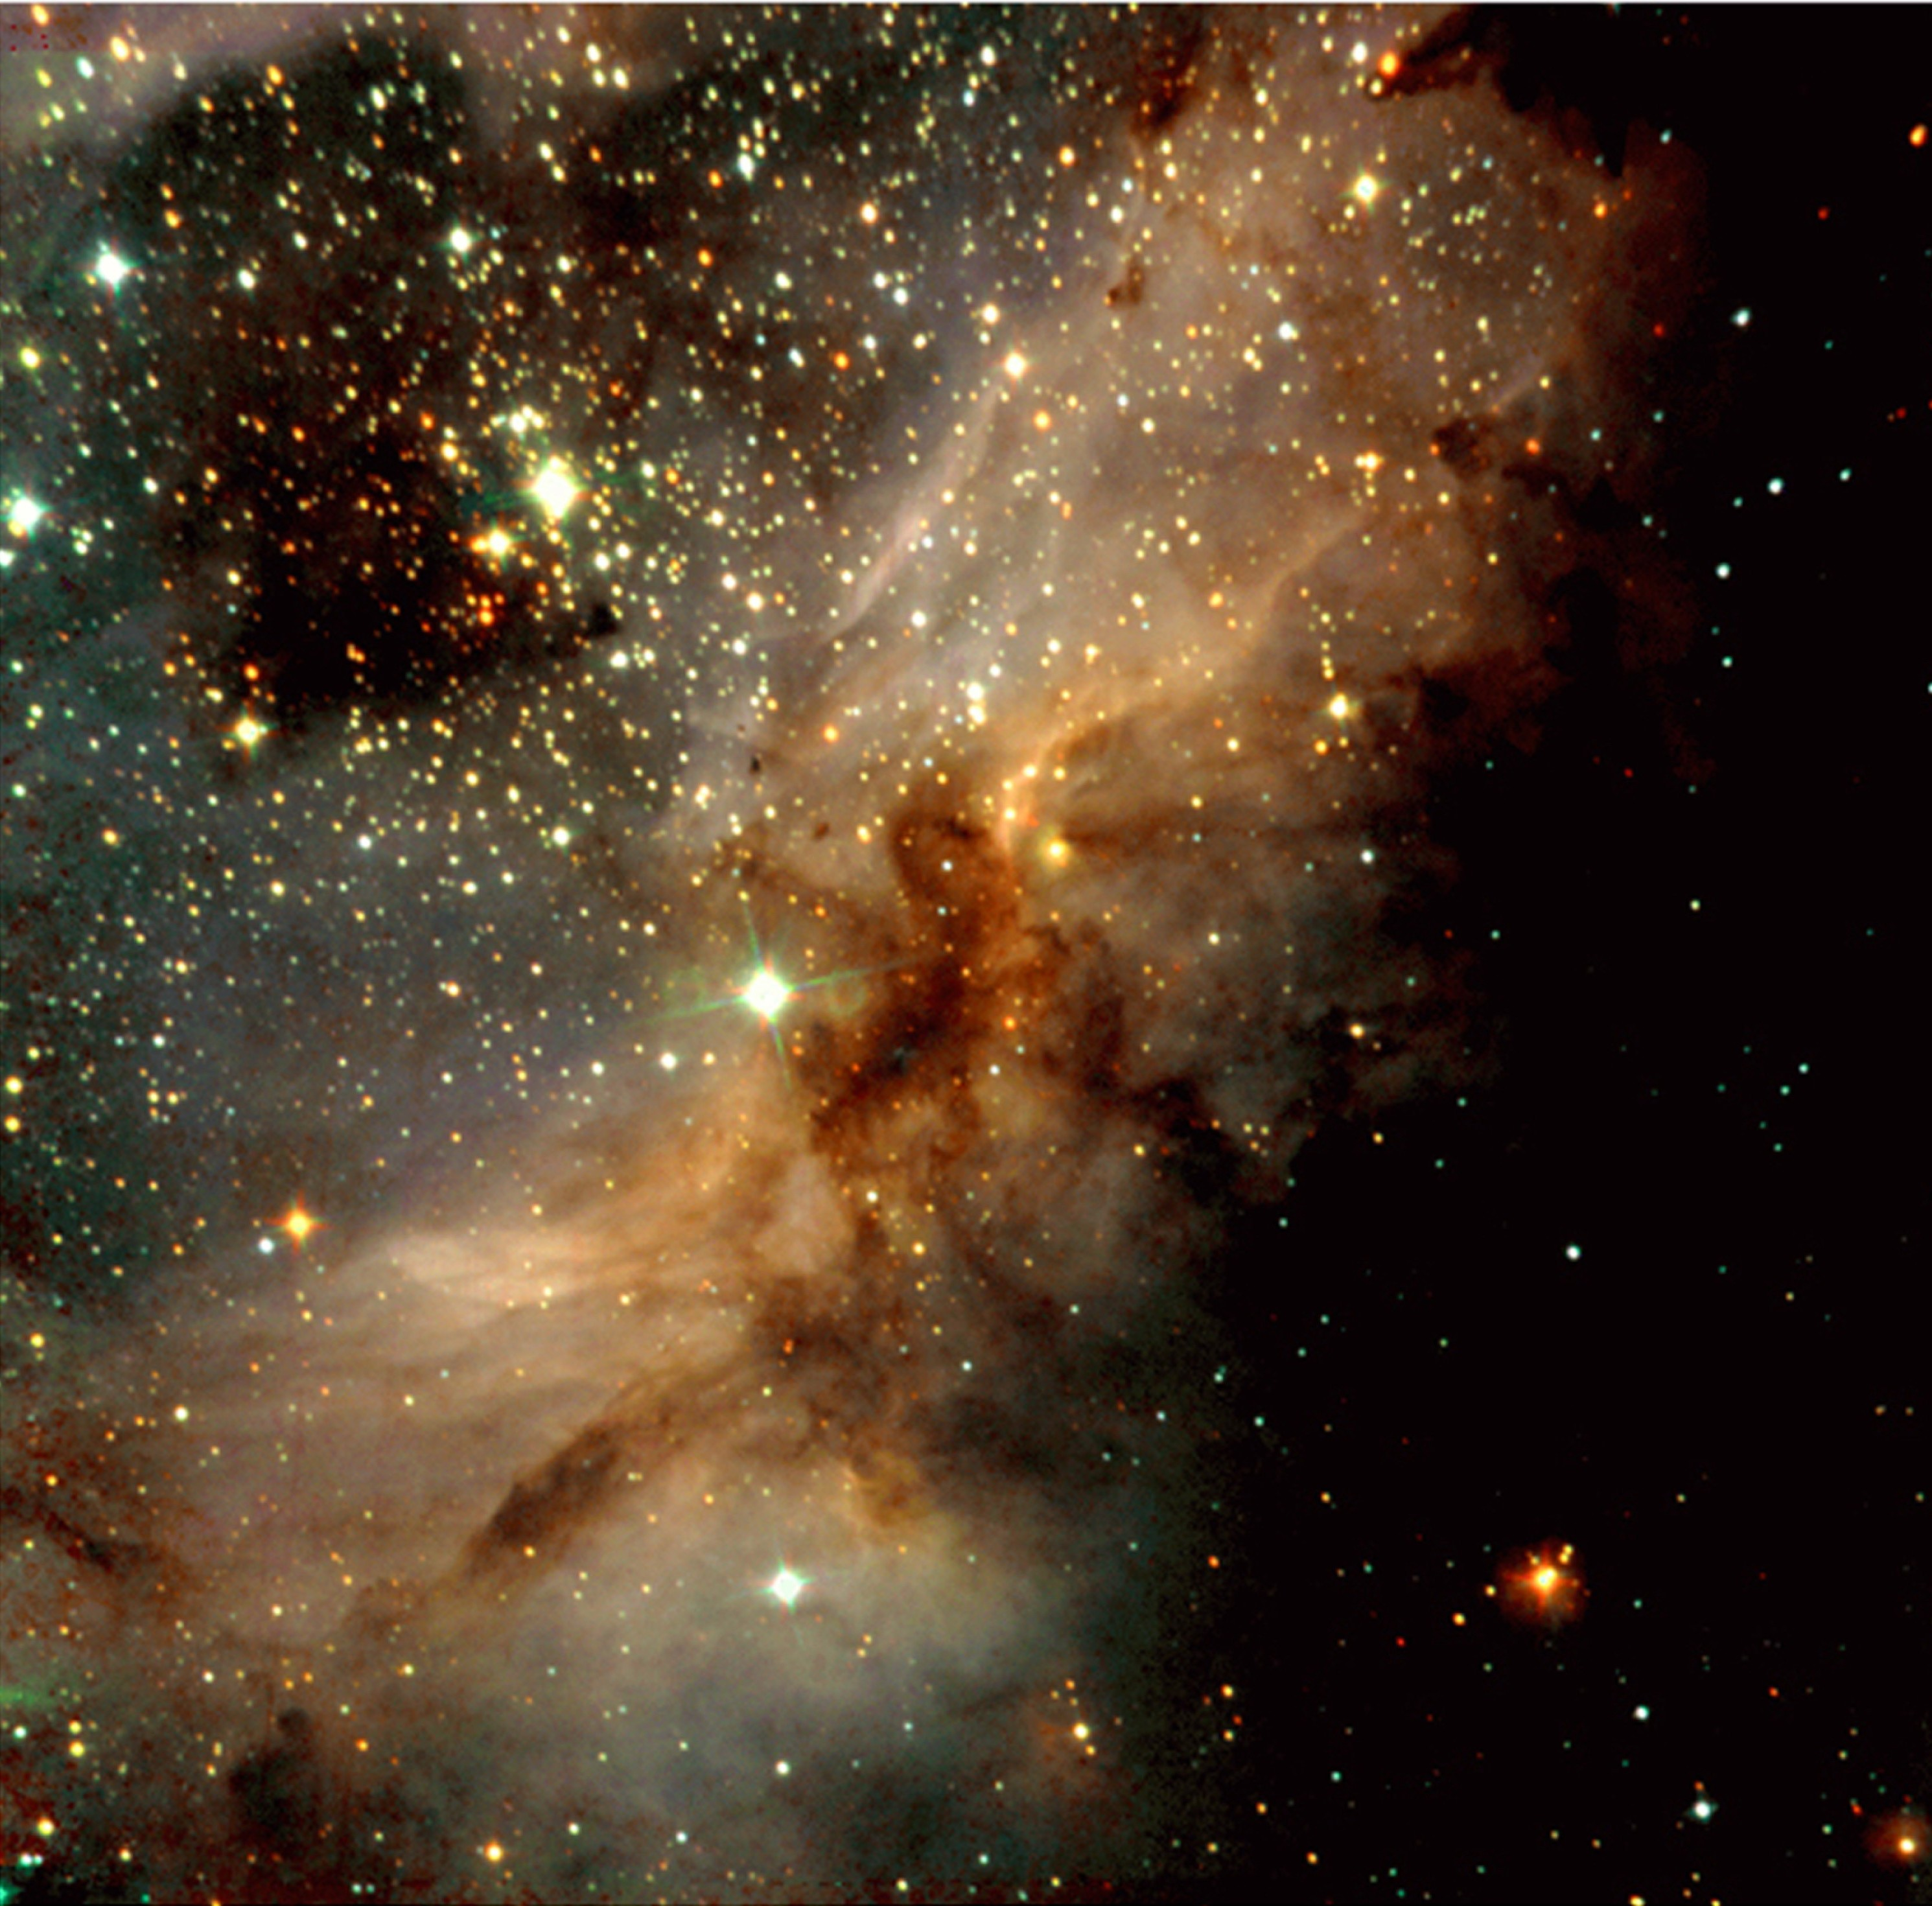 Nebula: come appare in IR una nube interstellare che sta formando stelle